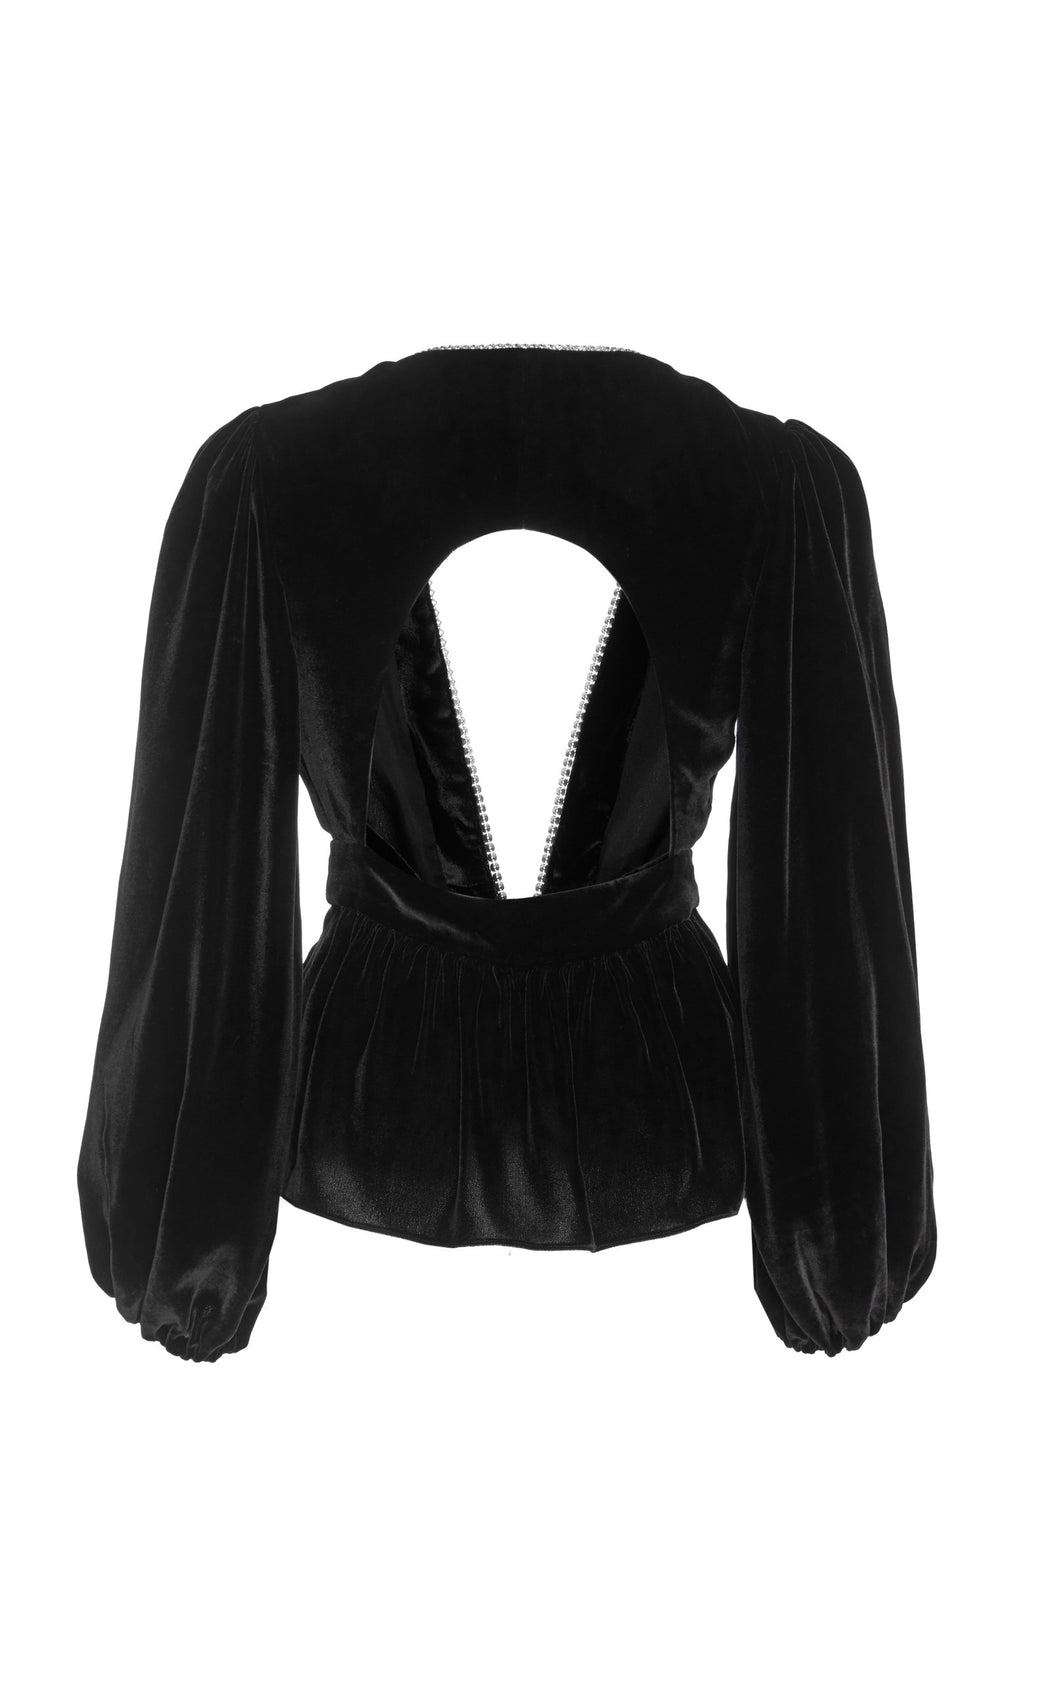 Luisa Cutout Crystal Embellished Black Velvet Top